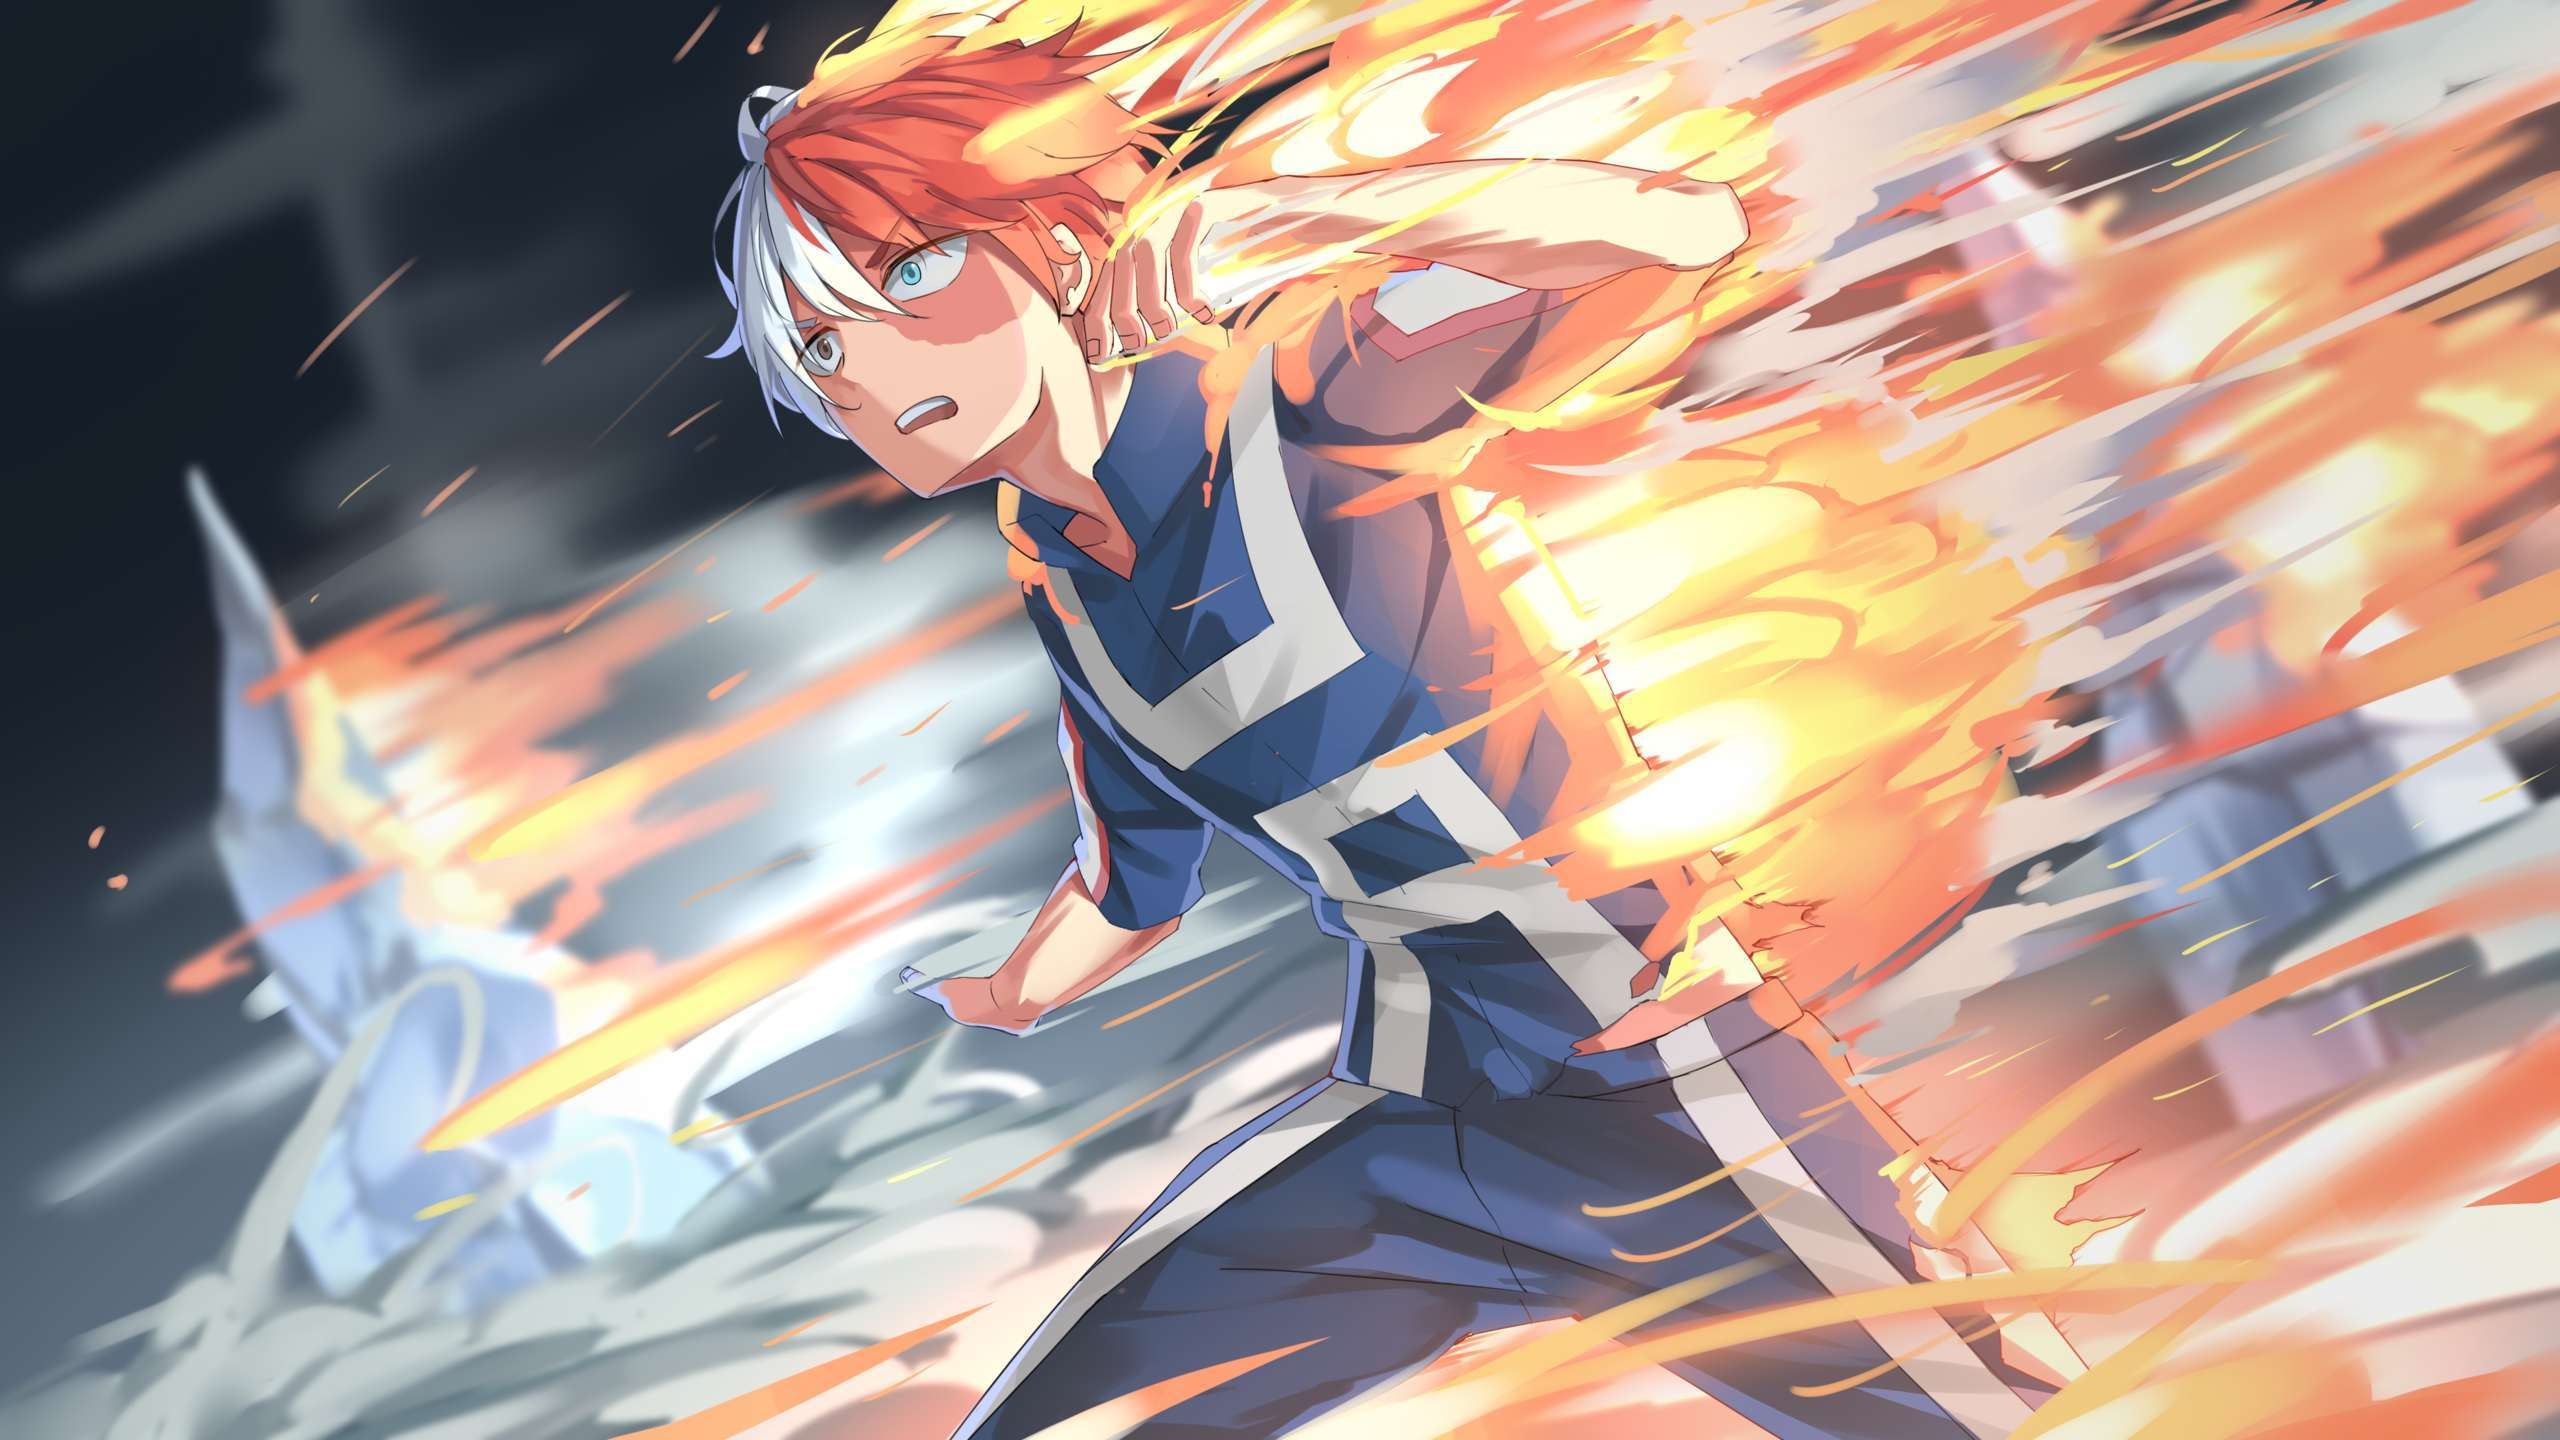 Anime Wallpaper Background Picture Wallpul HD Wallpaper